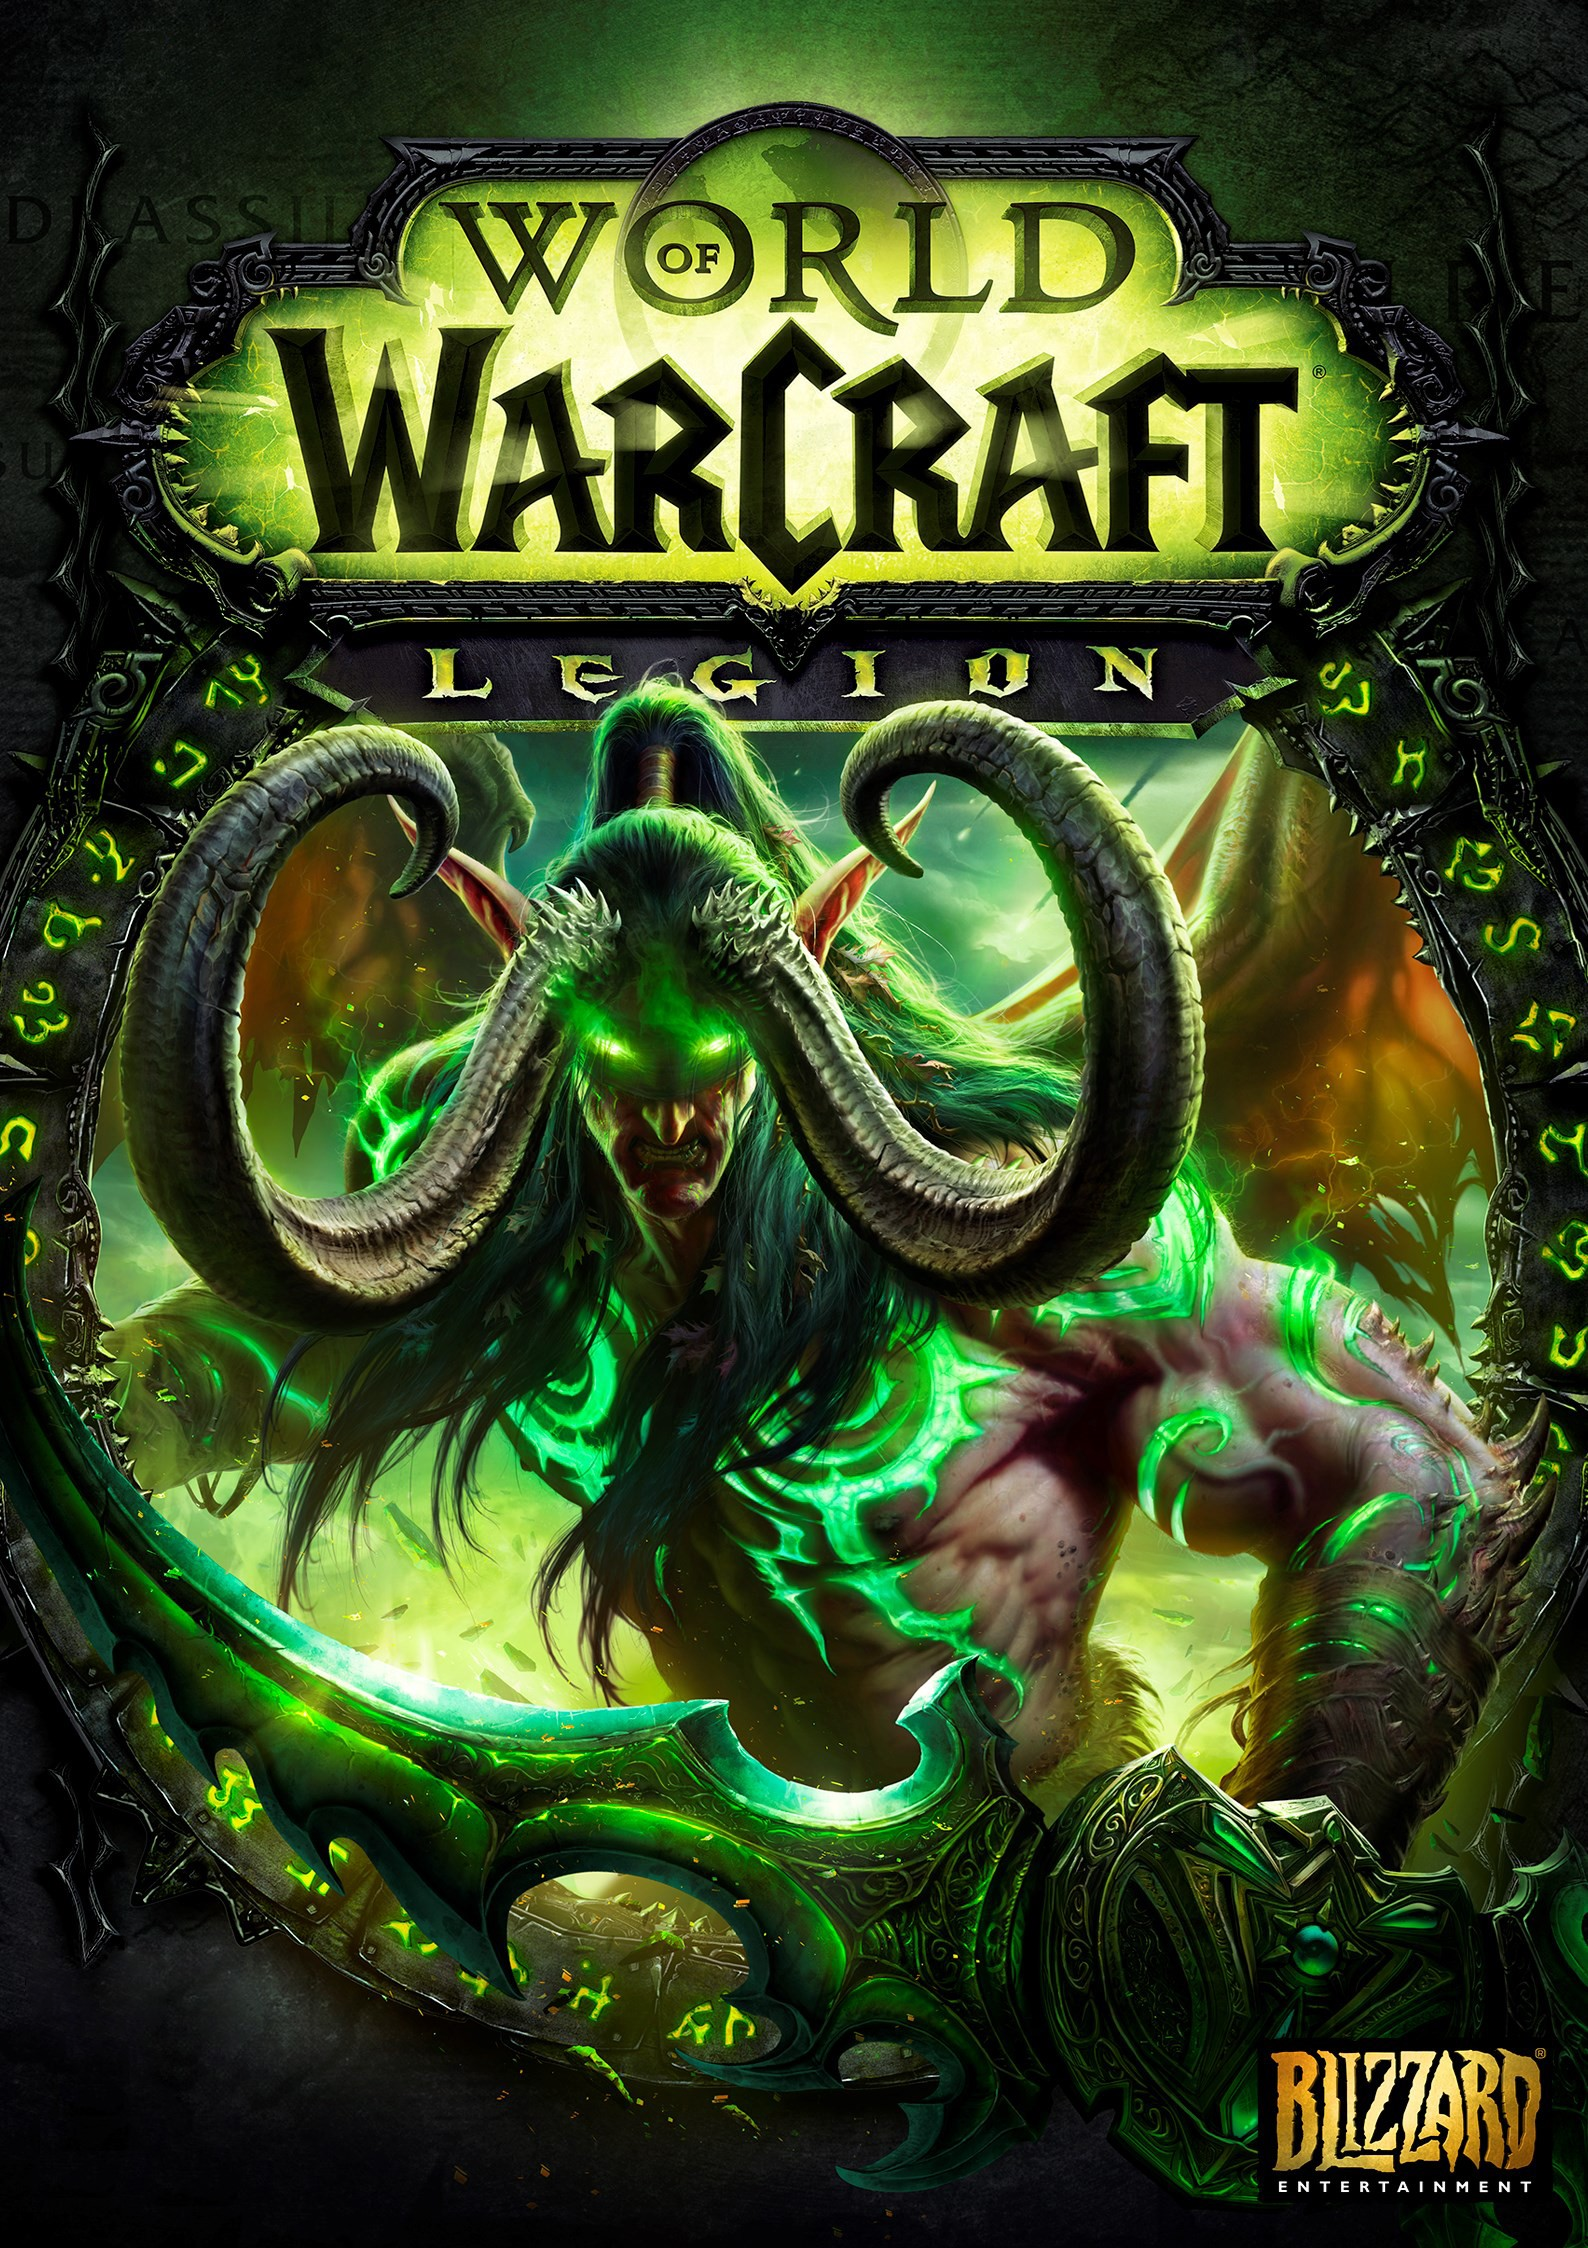 WORLD OF WARCRAFT: LEGION (EURO REGION +100 LVL)+GIFT